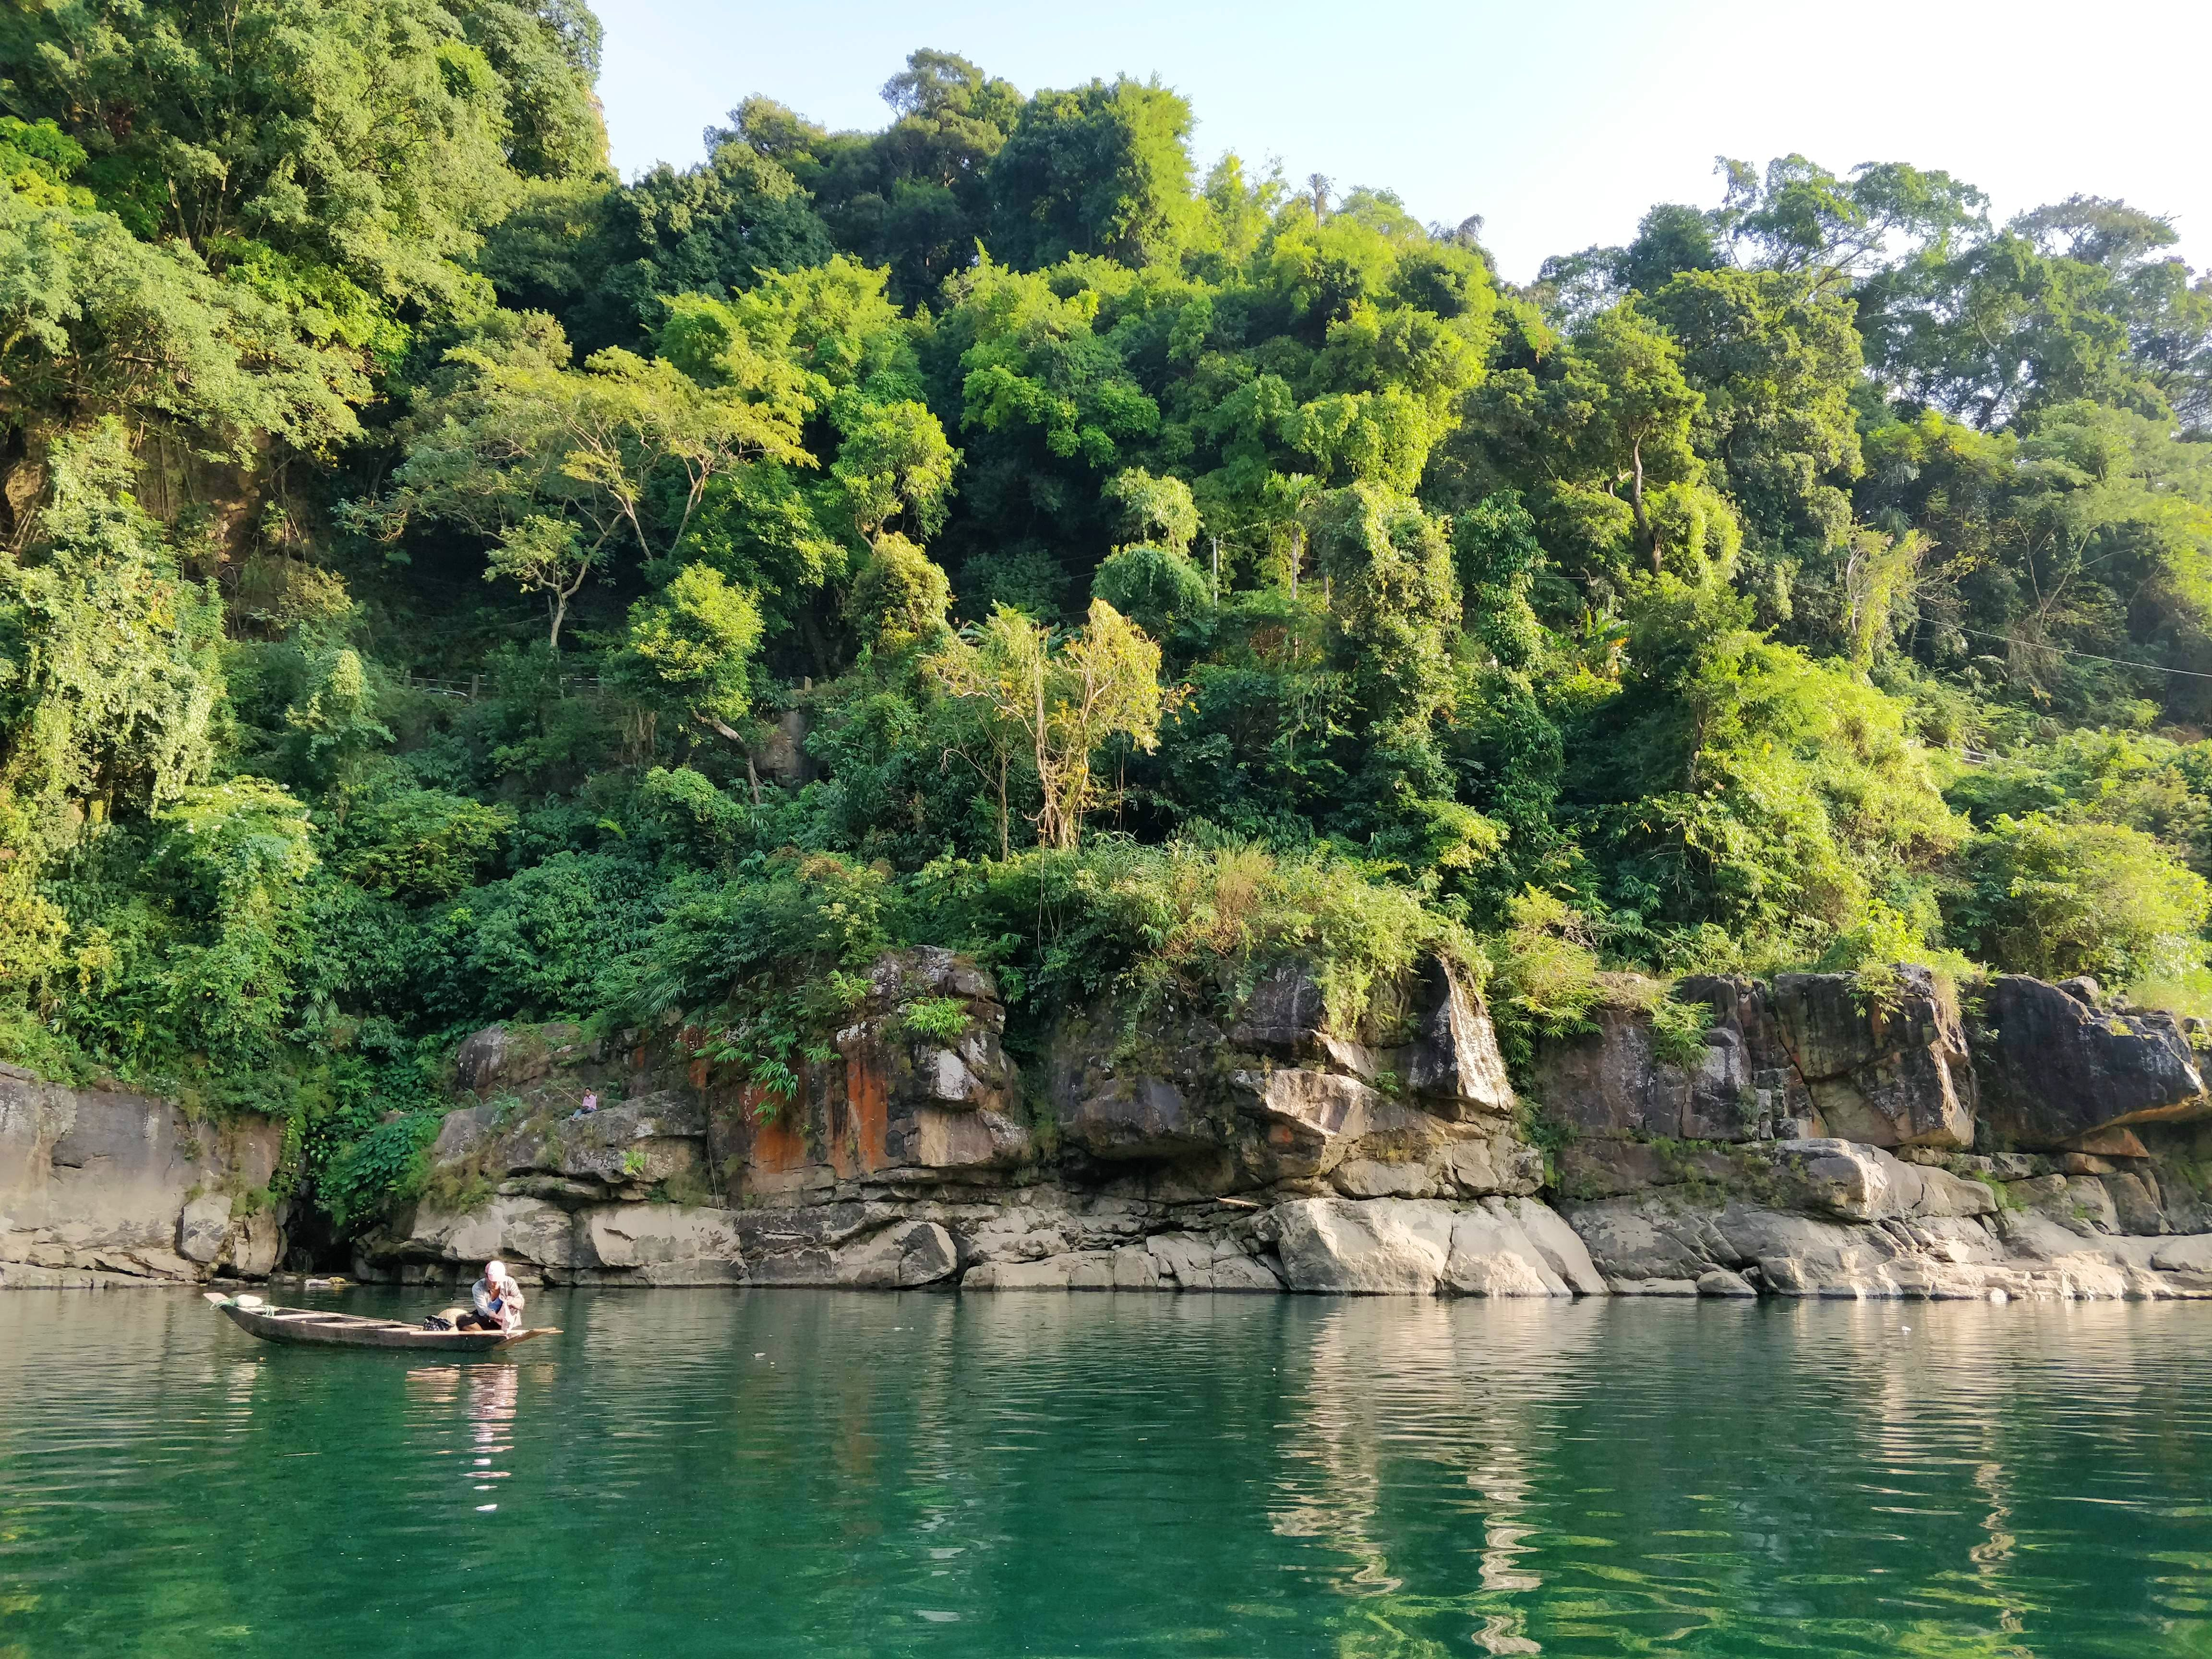 Body of water,Water,Nature,Vegetation,Natural landscape,Water resources,Nature reserve,Tree,River,Natural environment